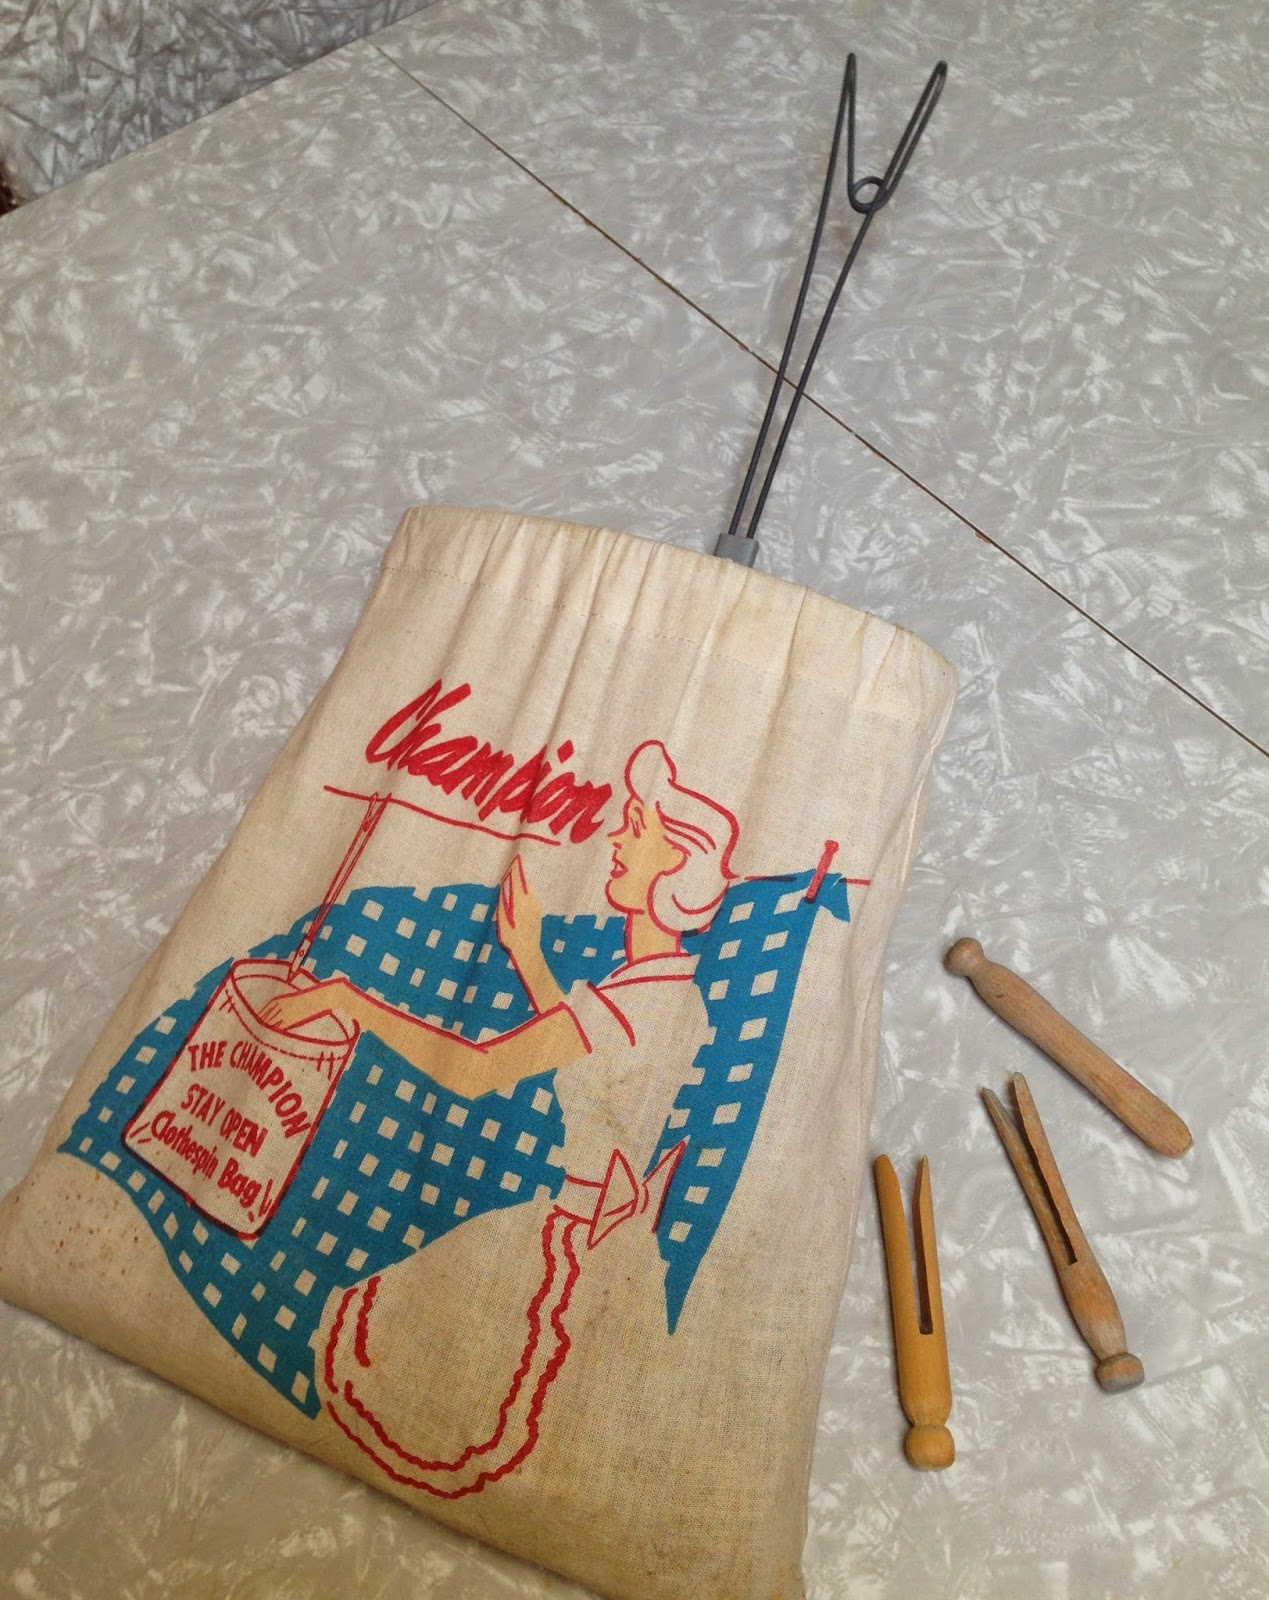 Clothes Pins Too Some Were The Spring Kind Older With No Springs Bag And Hanging Wire Are Both In Very Good Shape